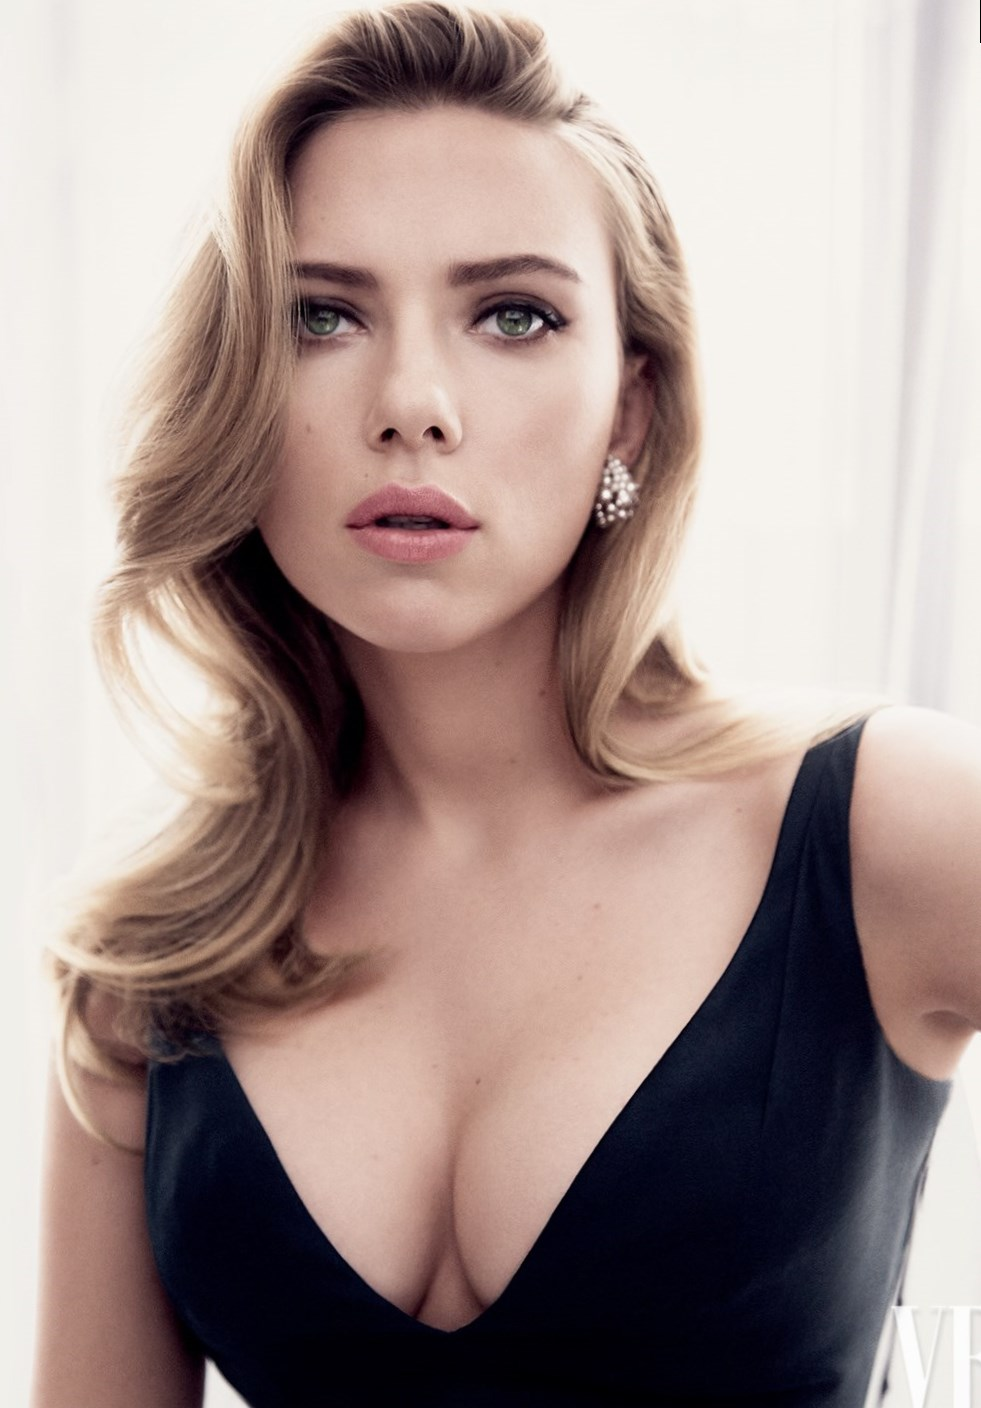 Scarlett Johansson - This one shouldn't have to be explained.